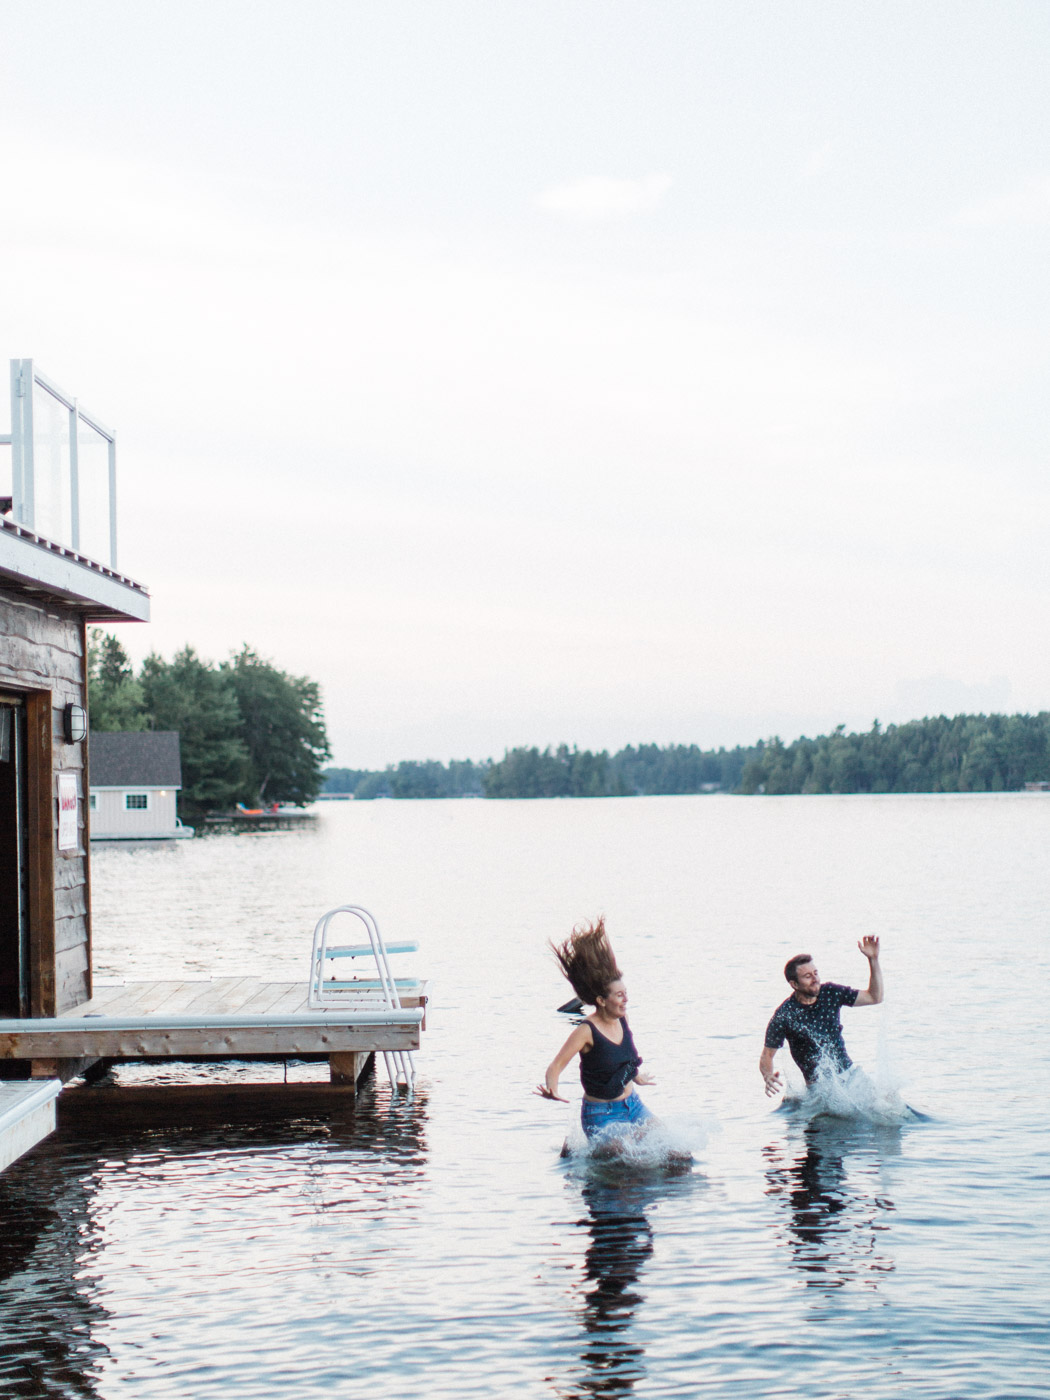 muskoka-wedding-photographer-adventurous-couples-engagement-session-lake-112.jpg